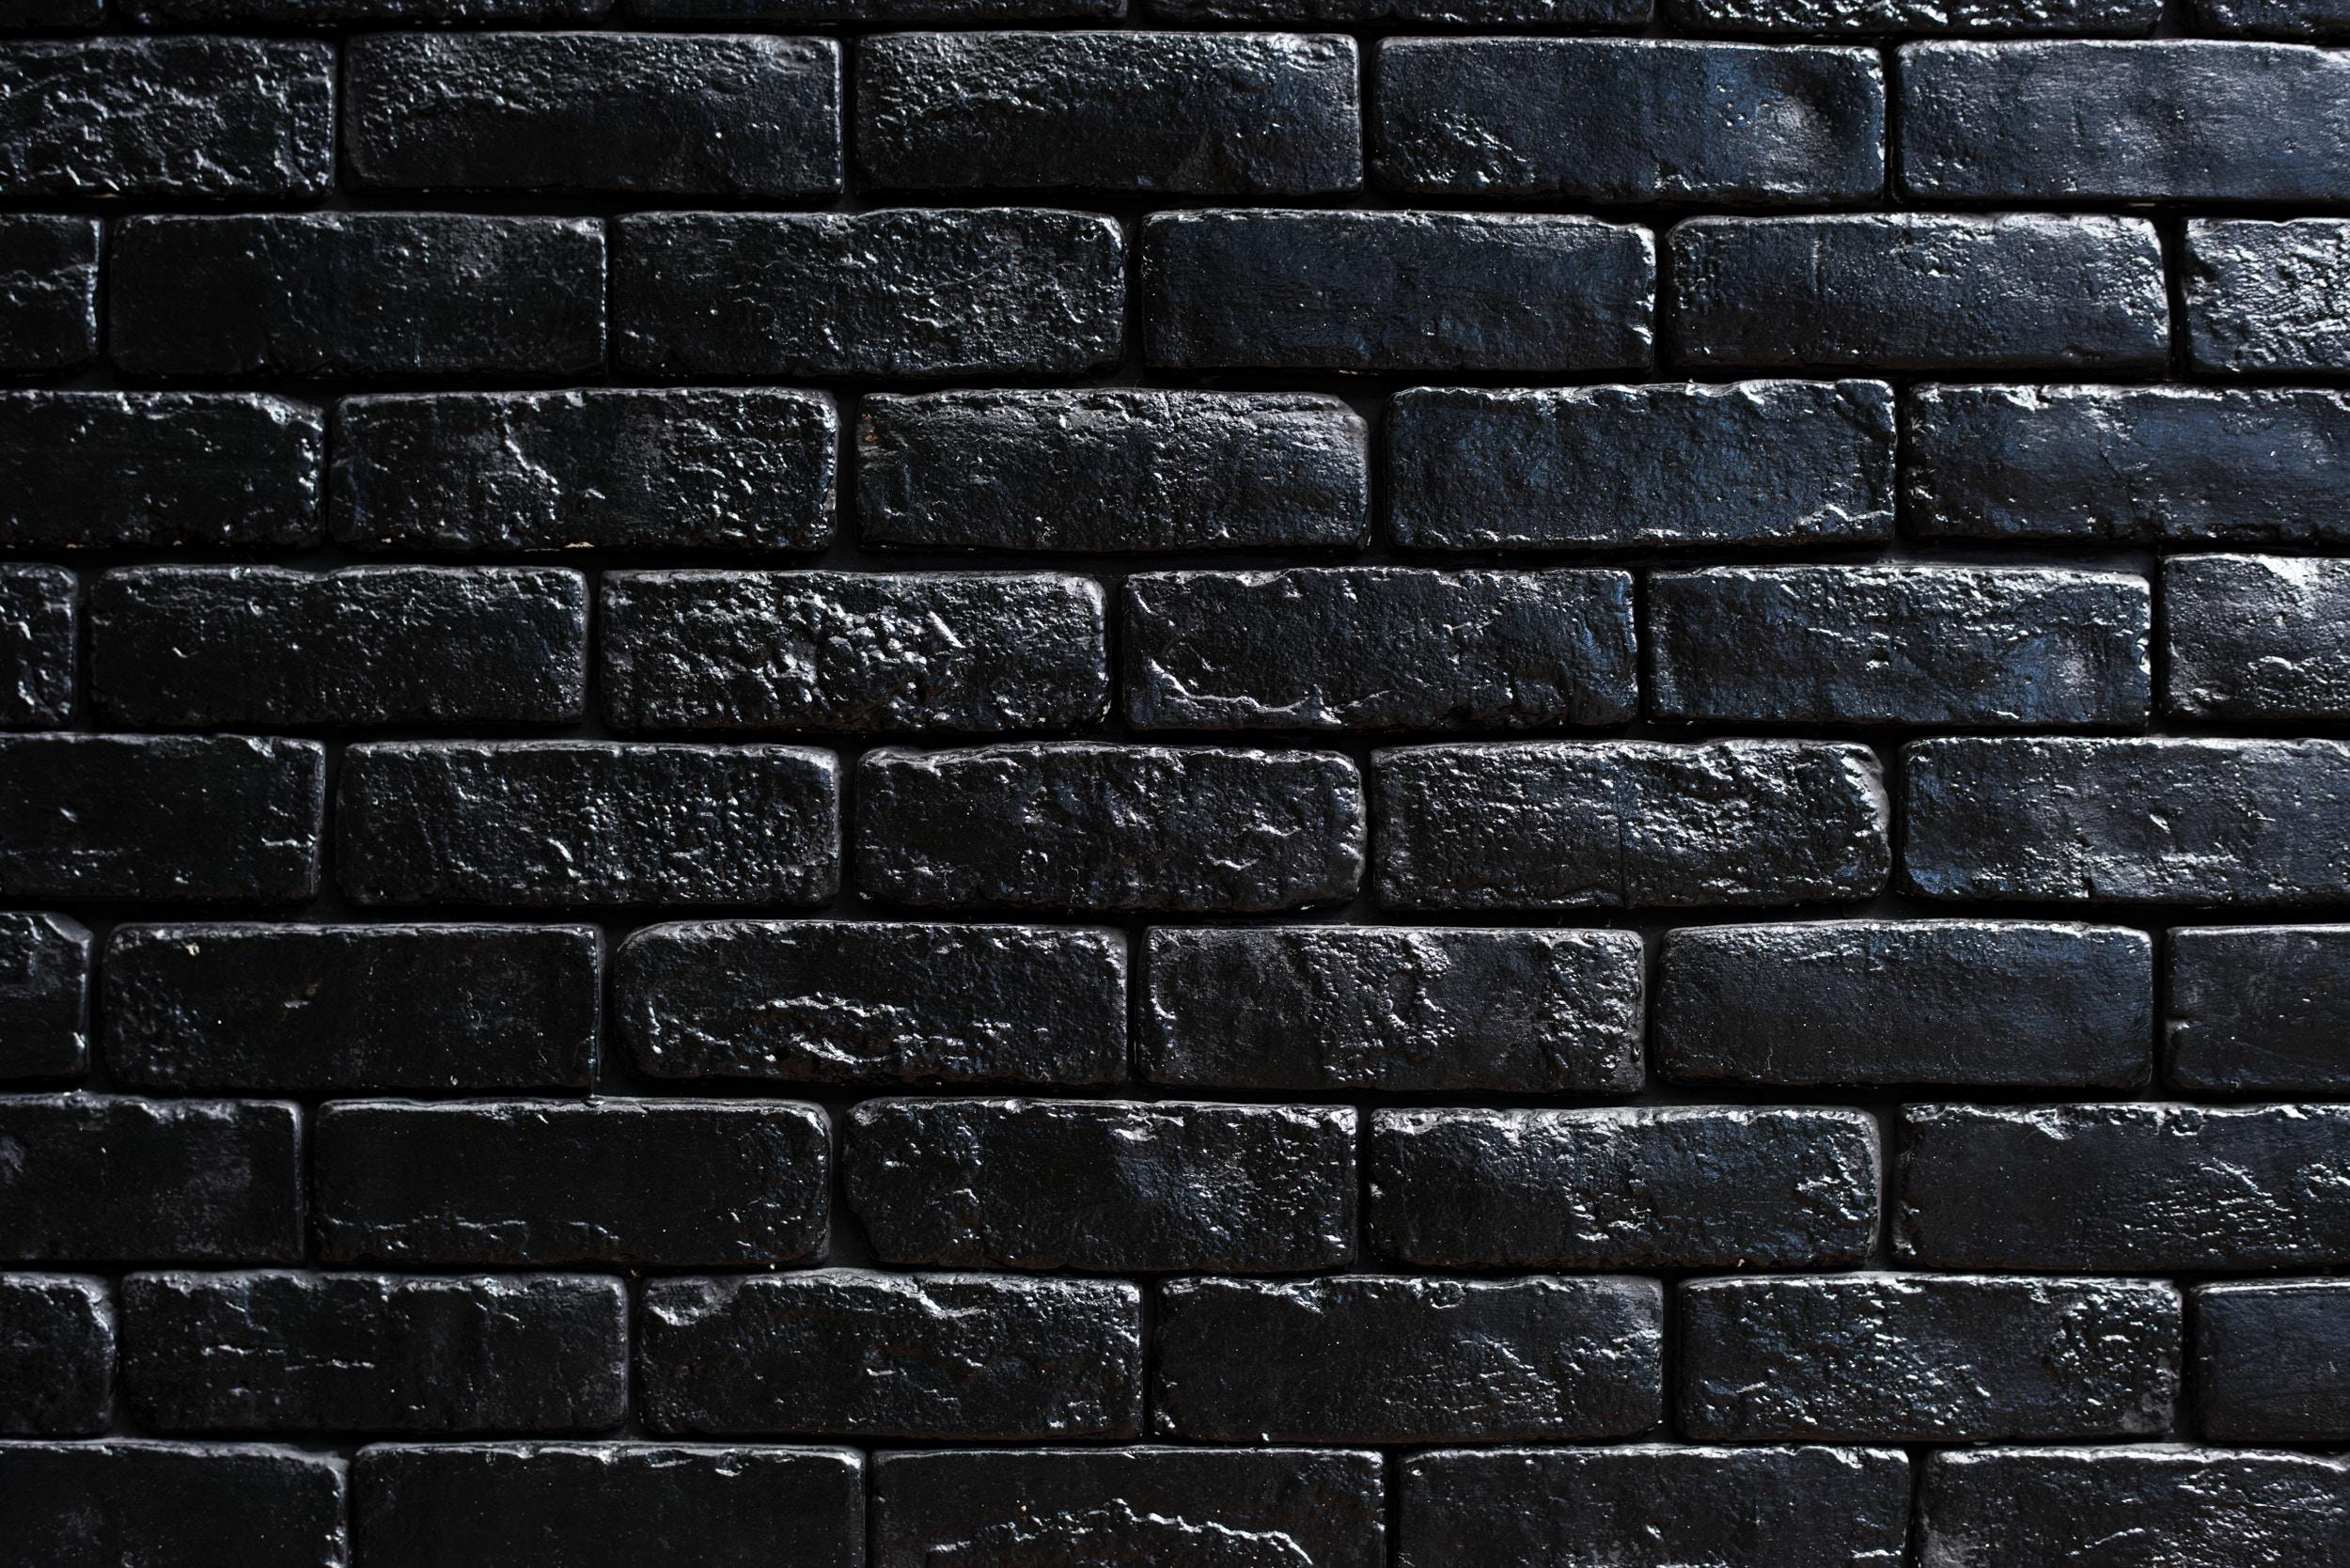 Black Brick Wall Wallpaper Wall Bricks Black Paint Hd Widescreen